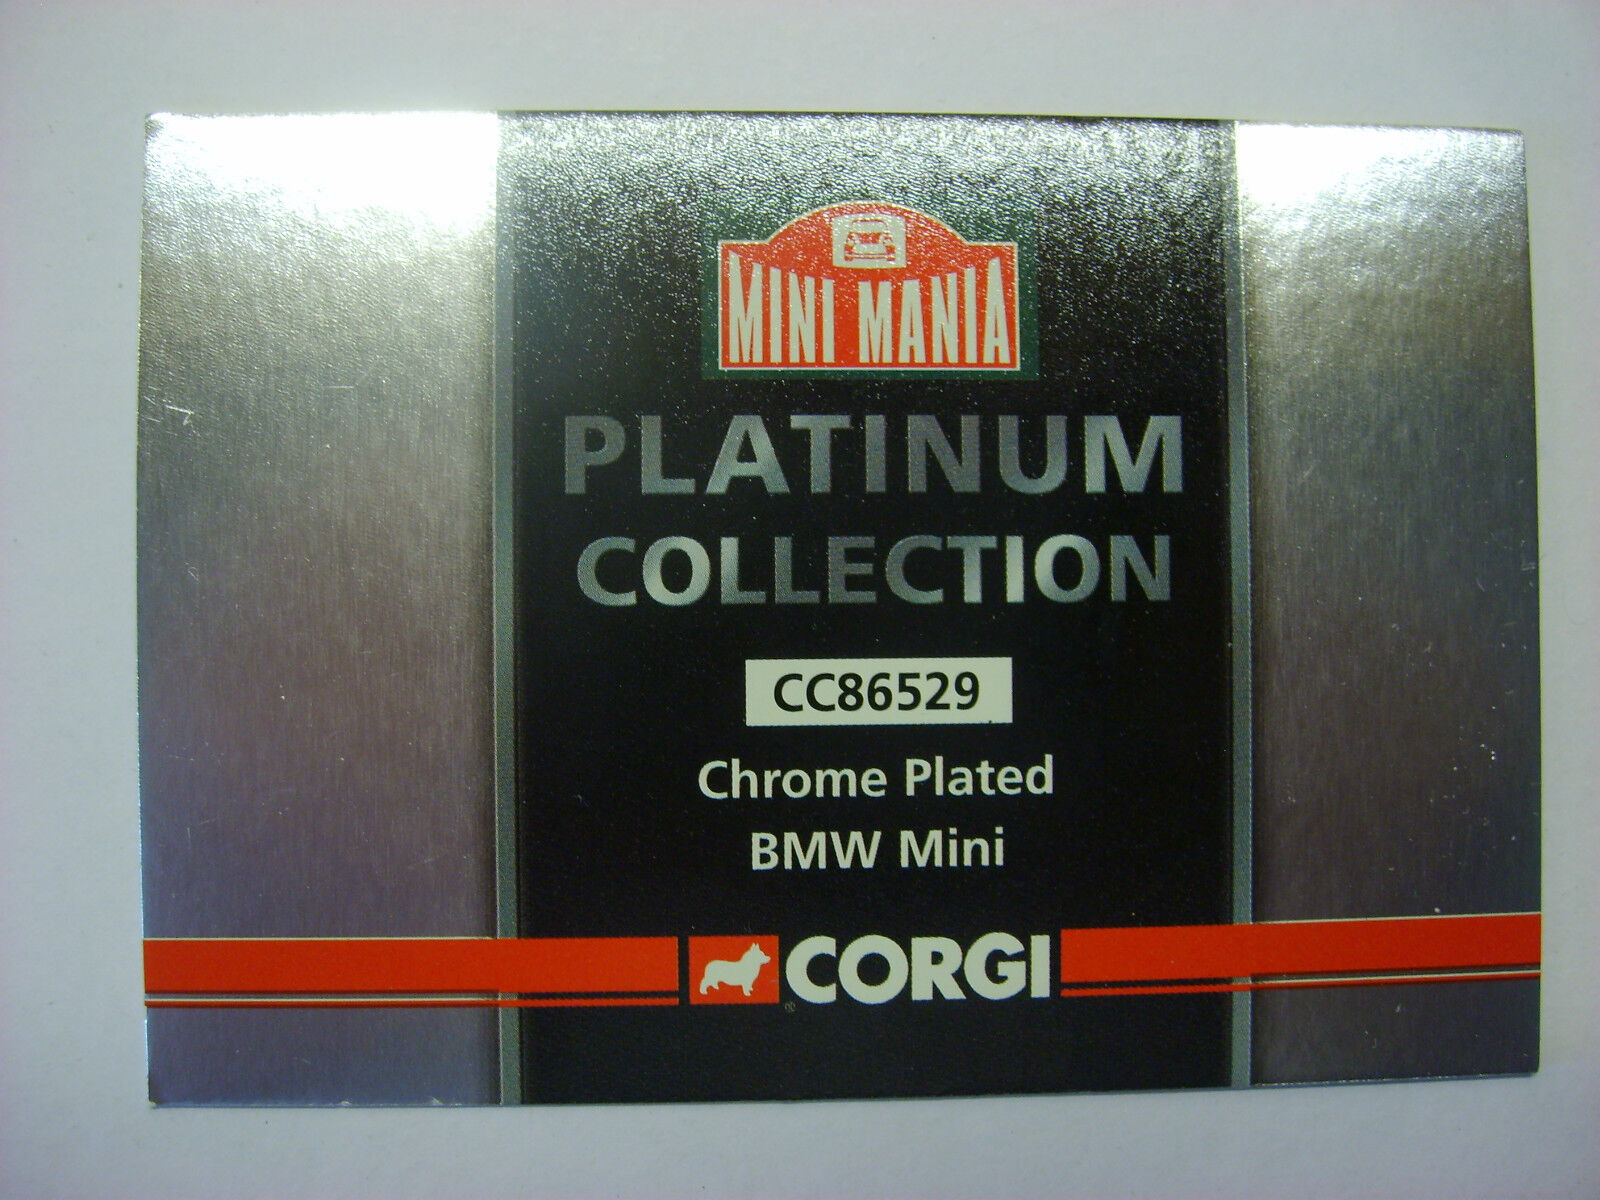 CORGI - CC86529 - BMW MINI  IN CHROME CHROME CHROME   PLATINUM COLL   1 36 SCALE    M.I .B. 74444e